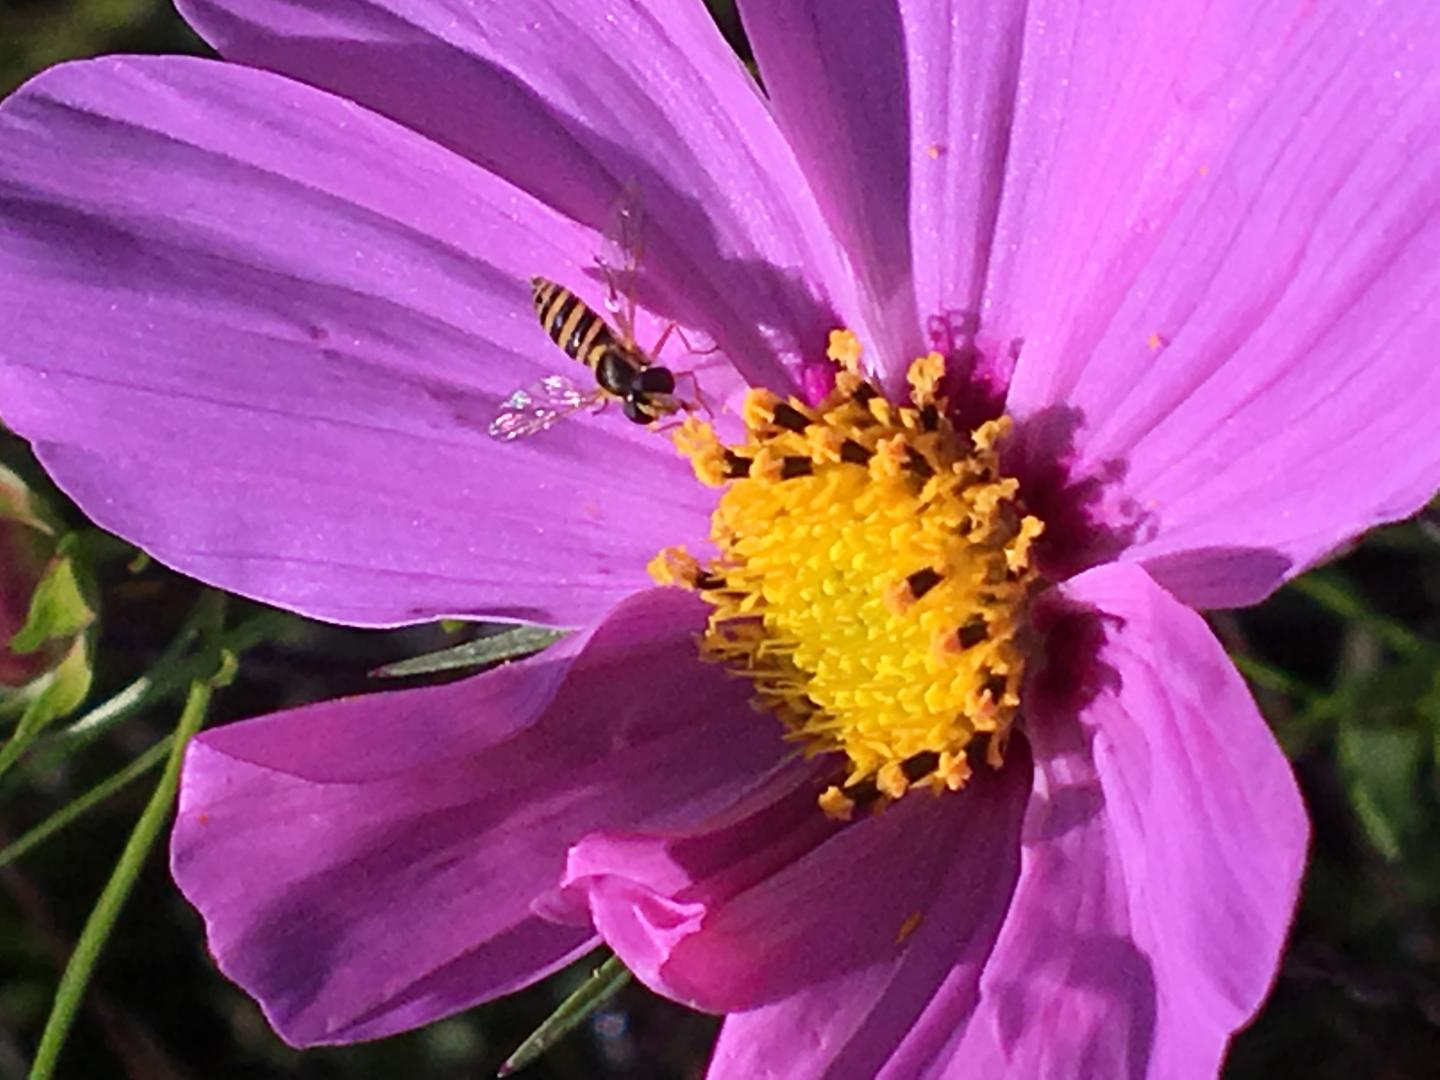 Syrphid Fly on a Flower